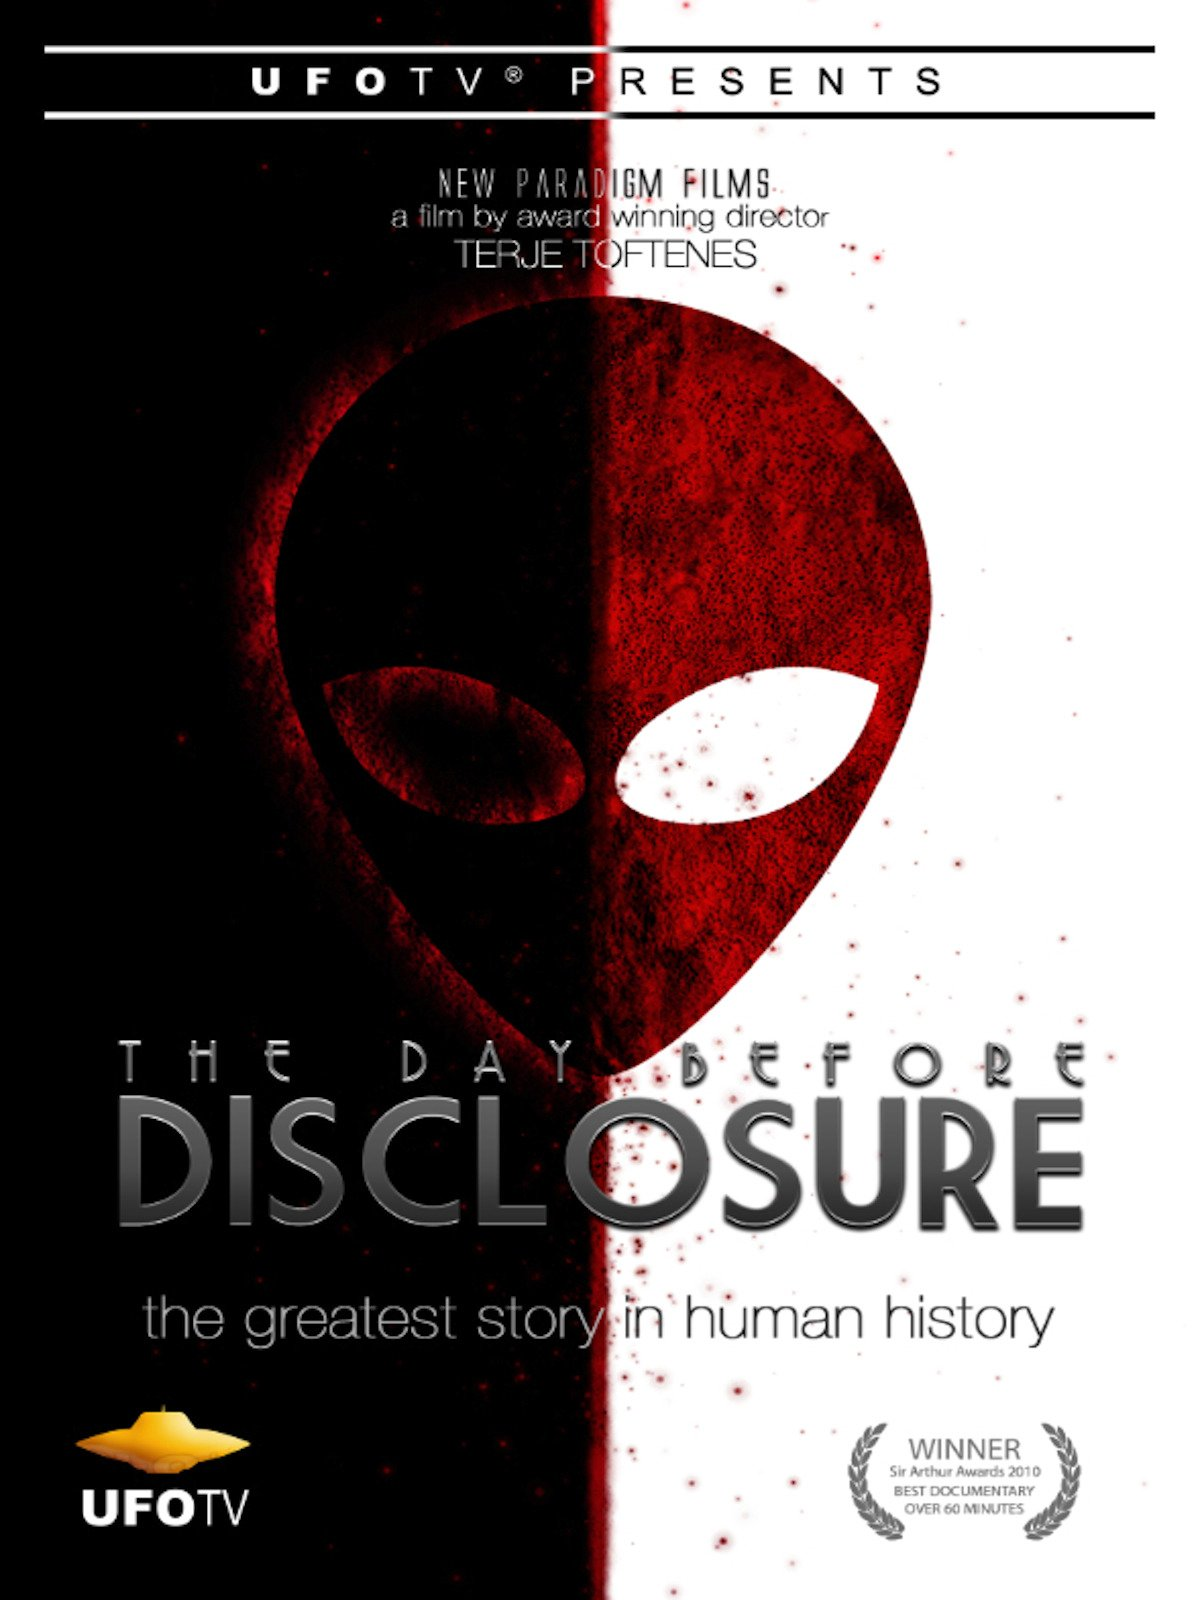 The Day Before Disclosure